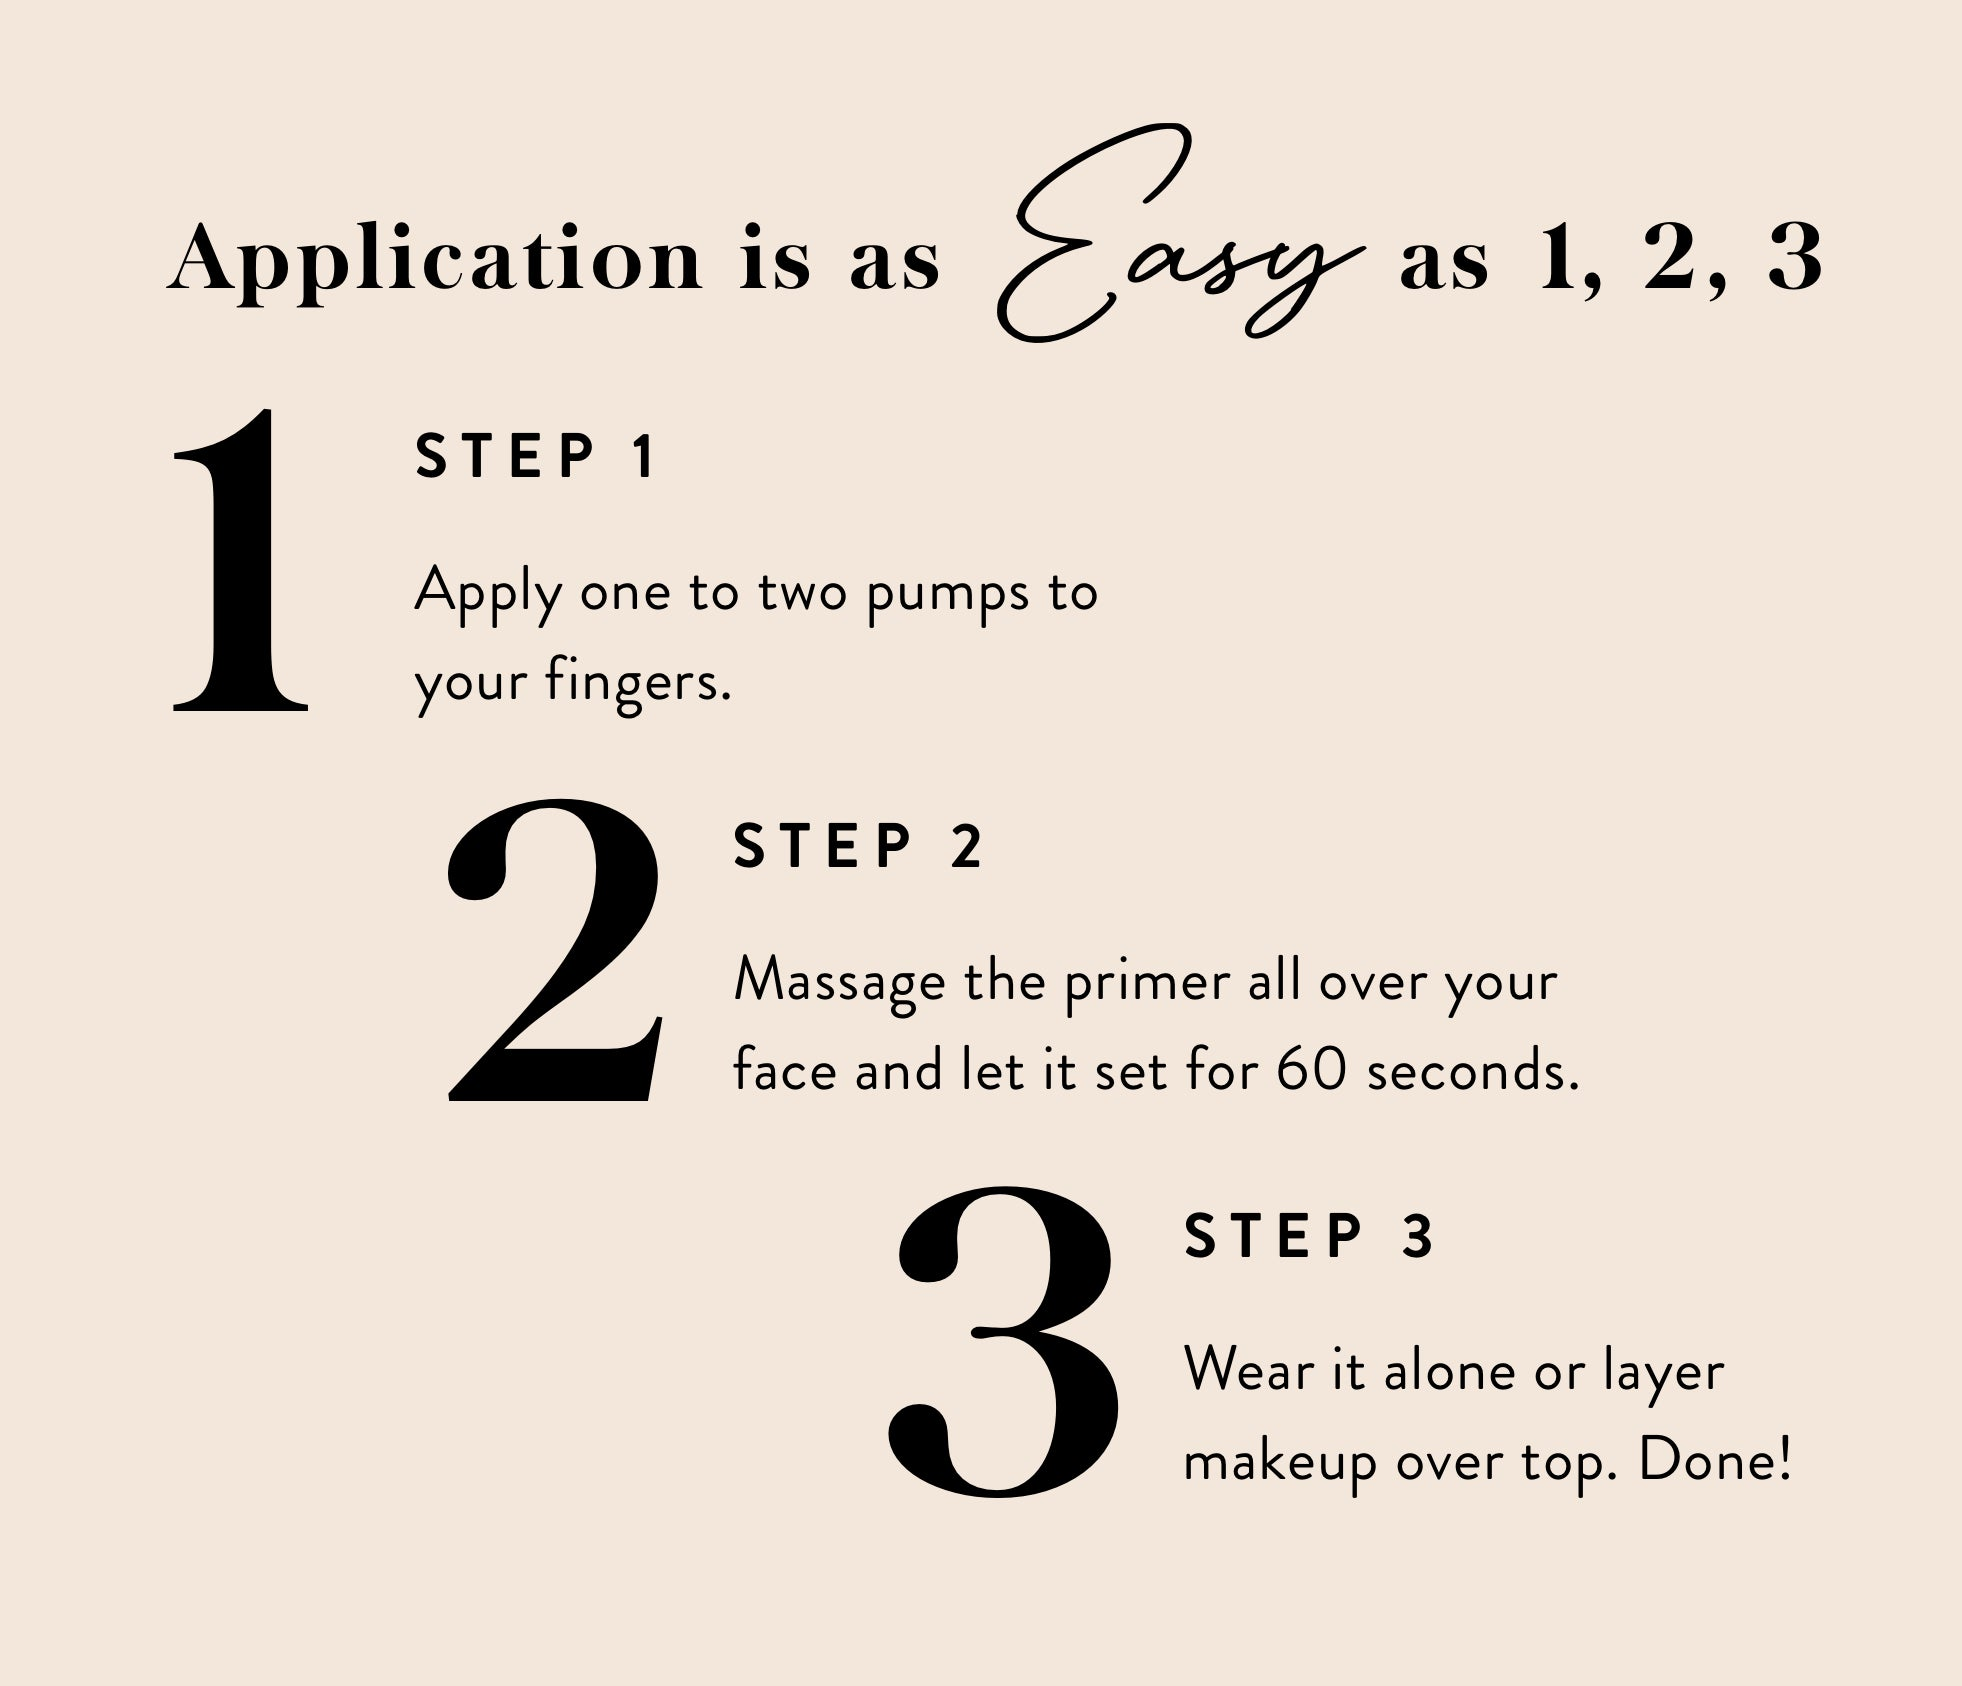 Application is as easy as 1, 2, 3. Step 1: Apply one to two pumps to your fingers. Step 2: Massage the primer all over your face and let it set for 60 seconds. Step 3: Wear it alone or layer makeup on top. Done!